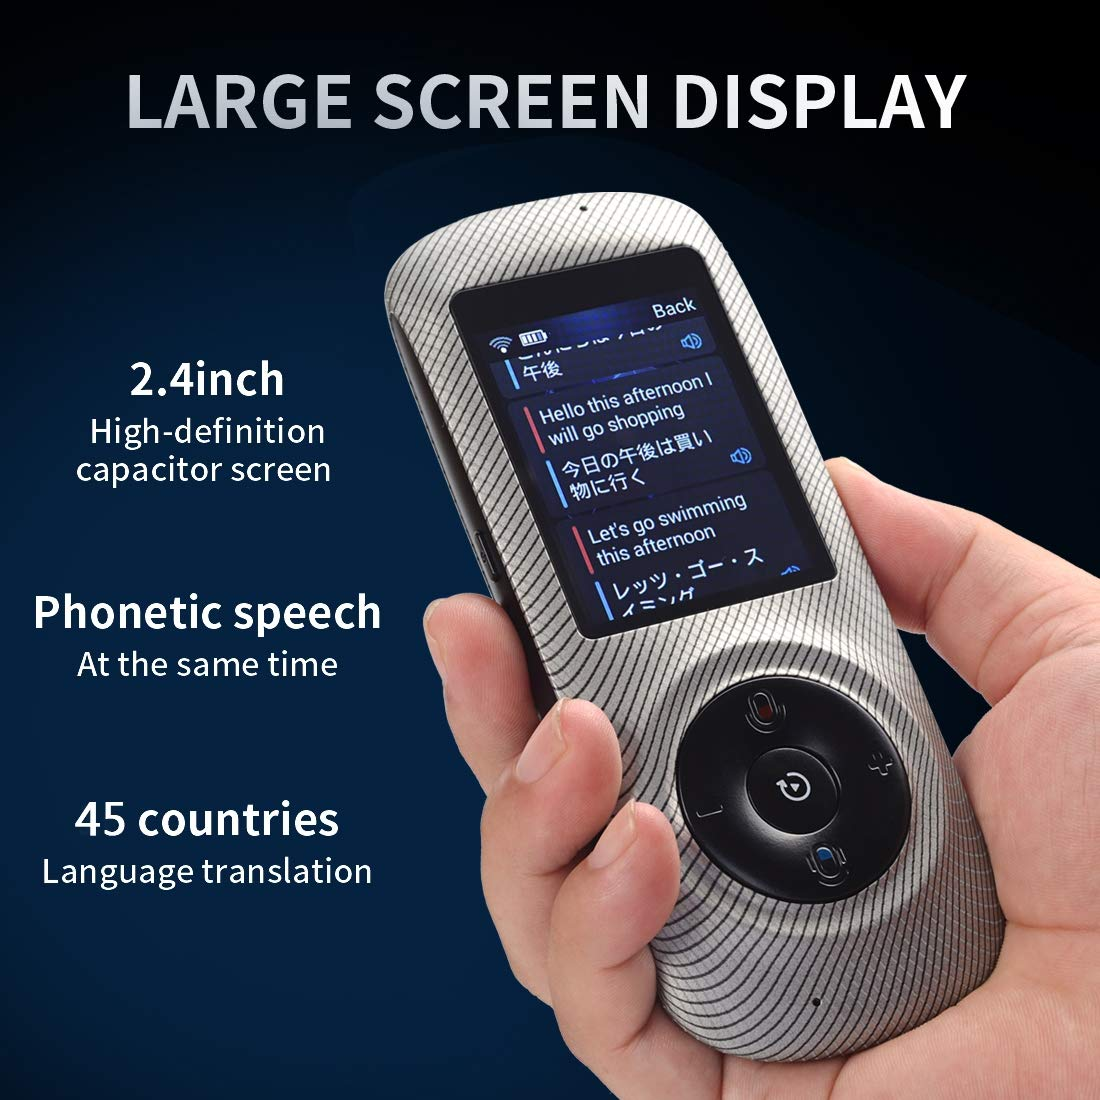 Instant Voice Translator Device Translation 45 Languages Smart 2 Way WiFi 2.4inch IPS Capacitive Touch Screen by Aspiring (Image #2)